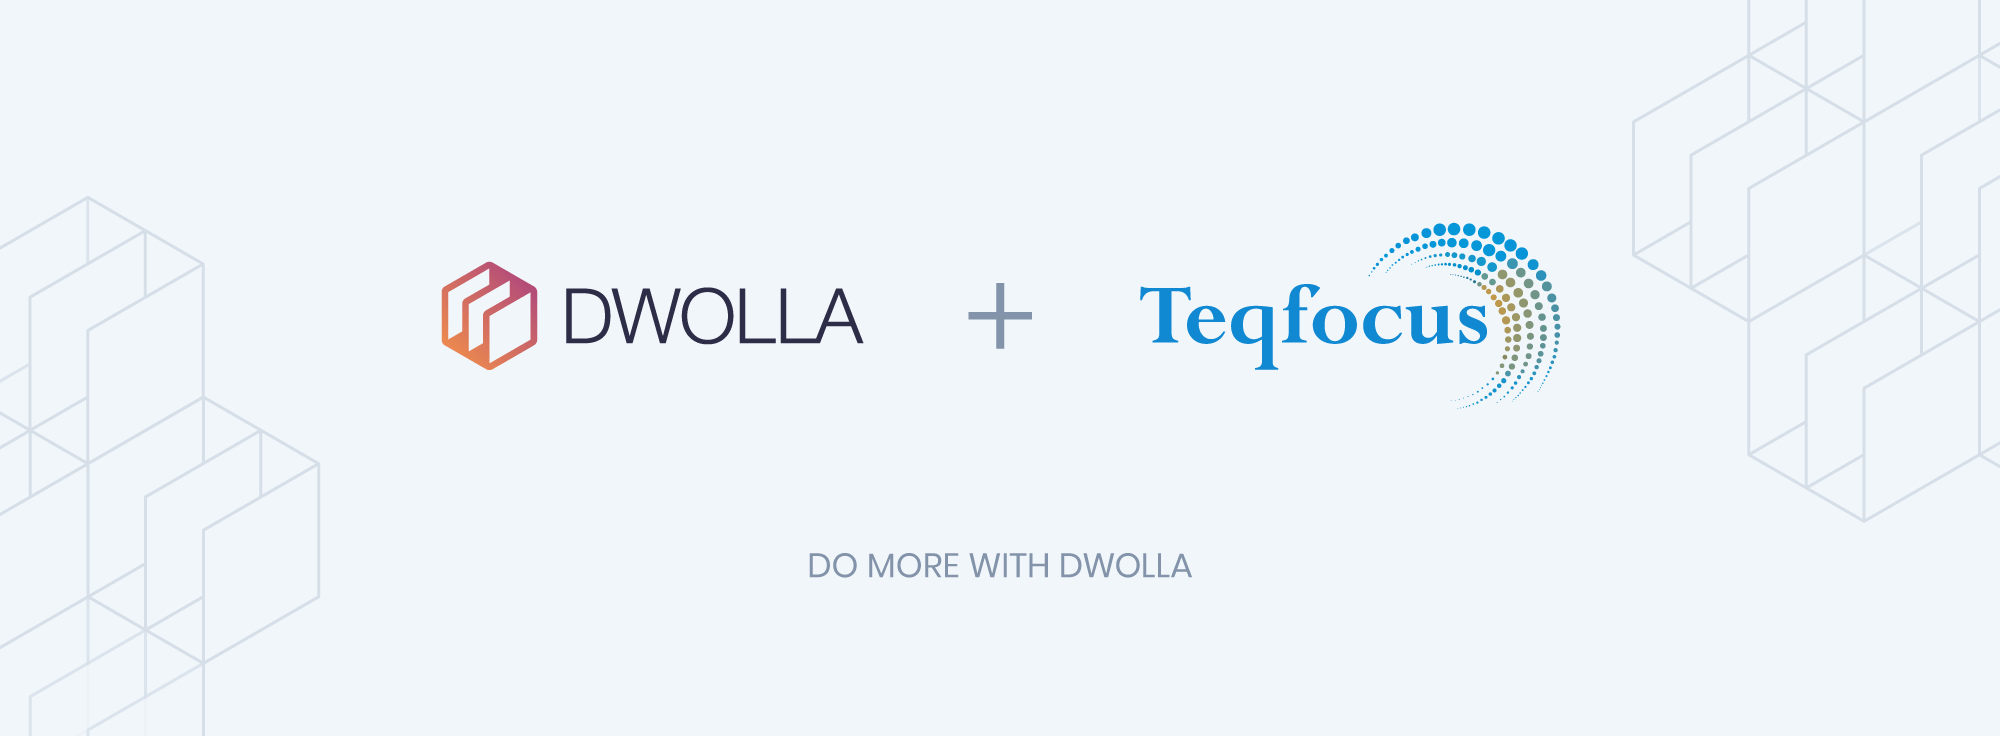 dwolla=productfy